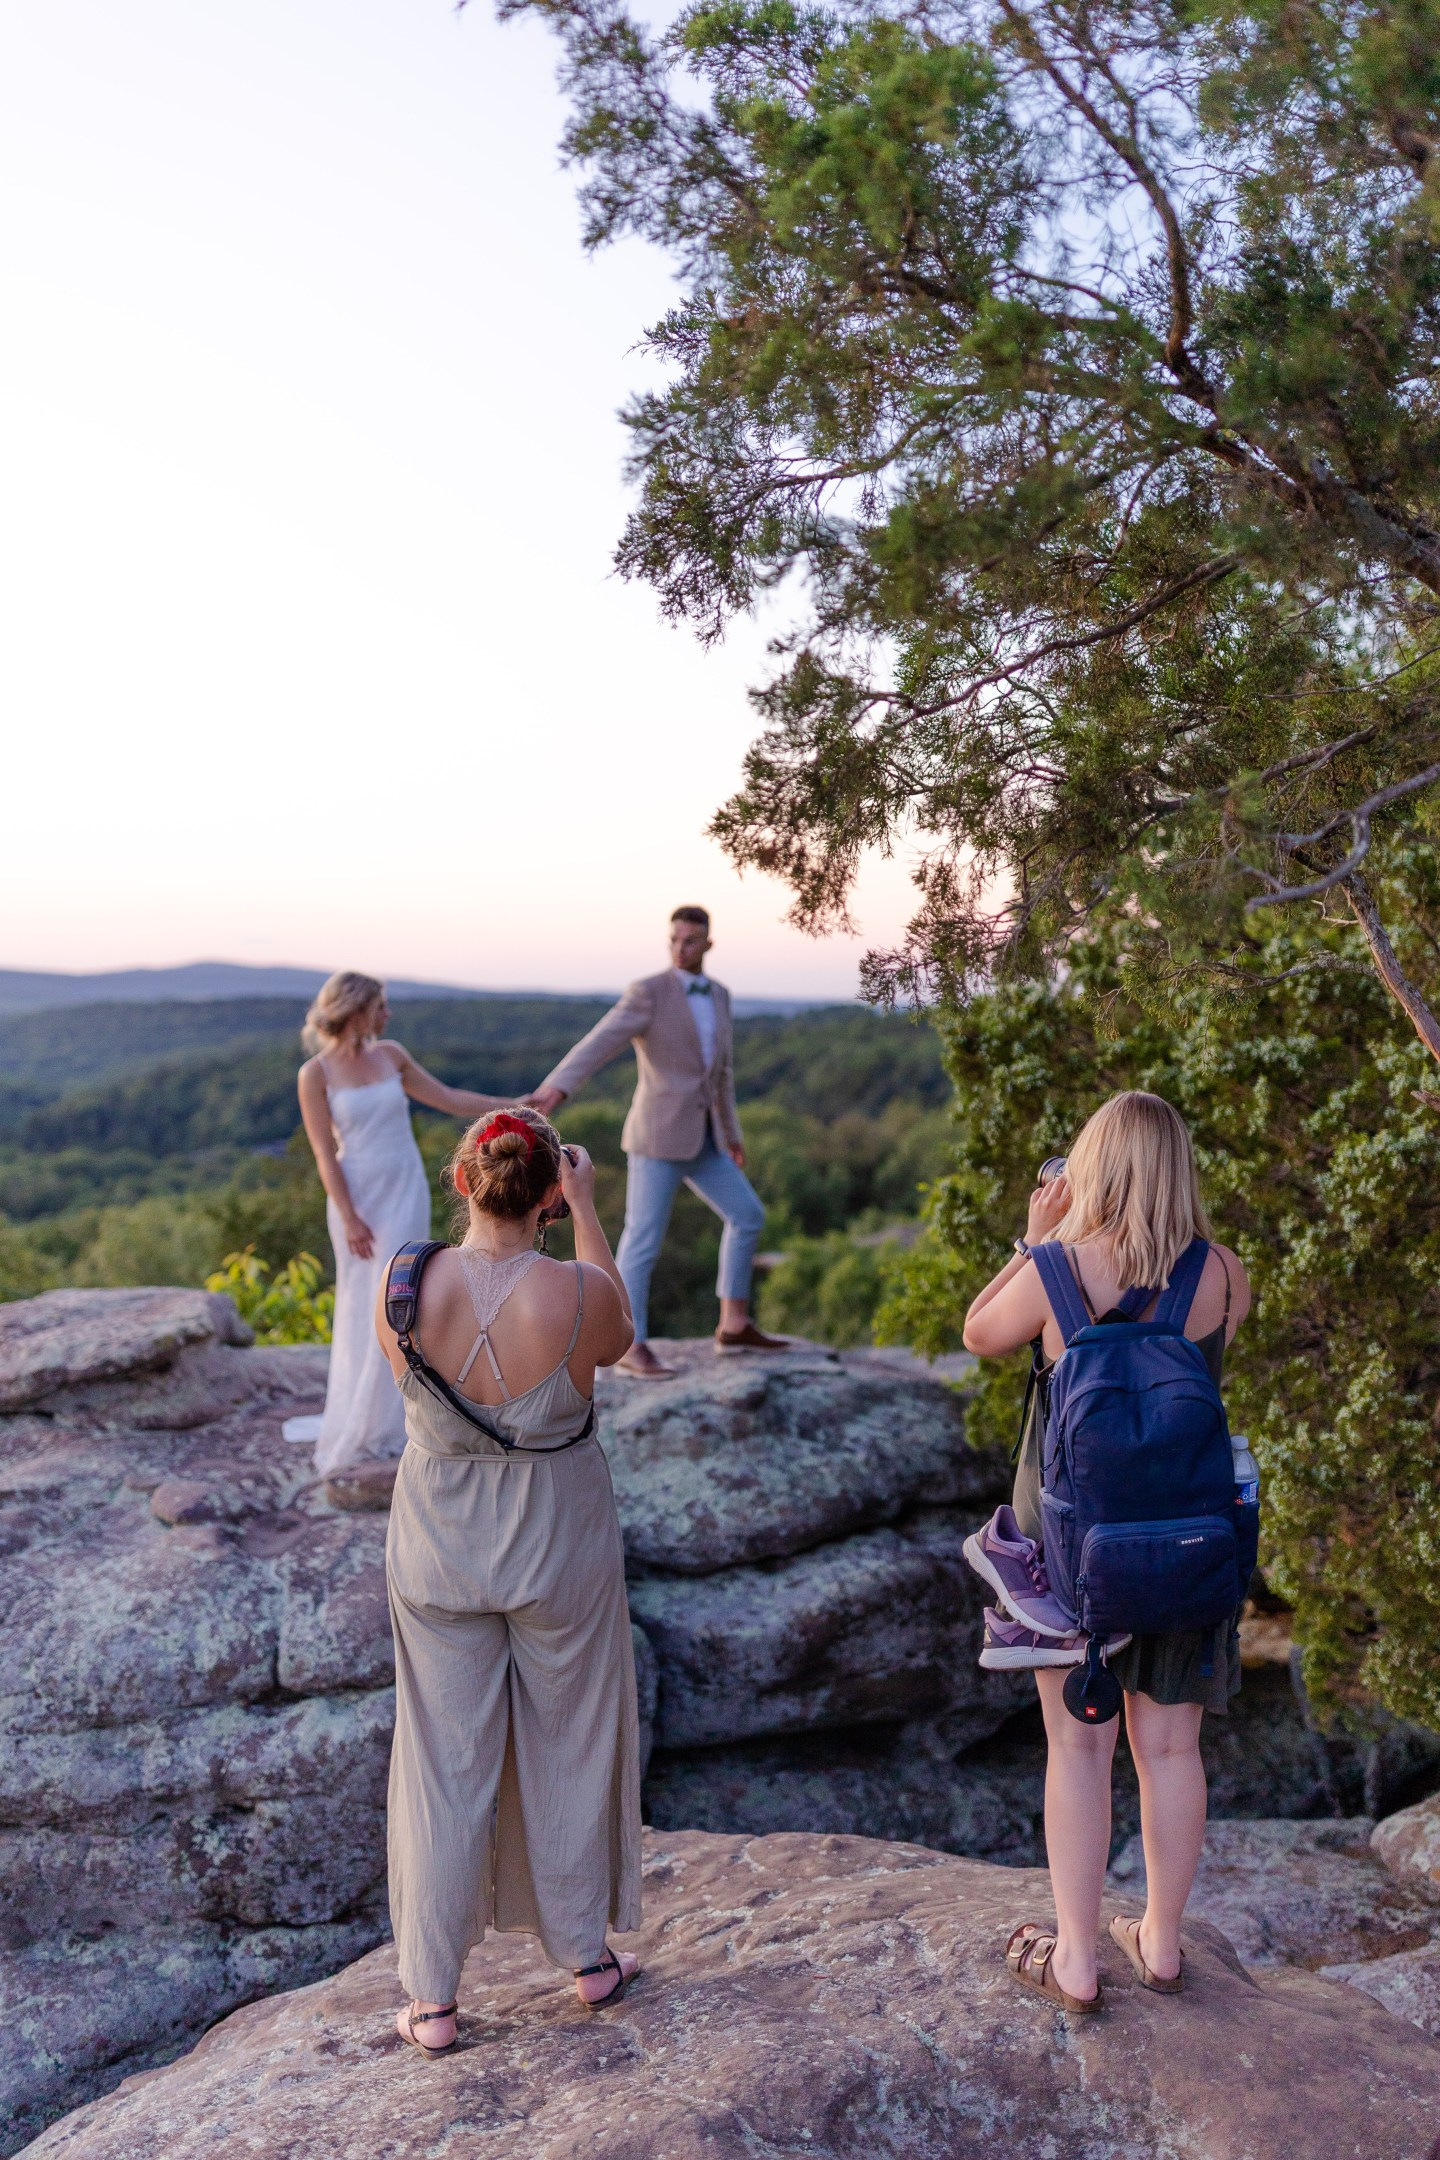 Adventure Elopement styled session bts marketing materials